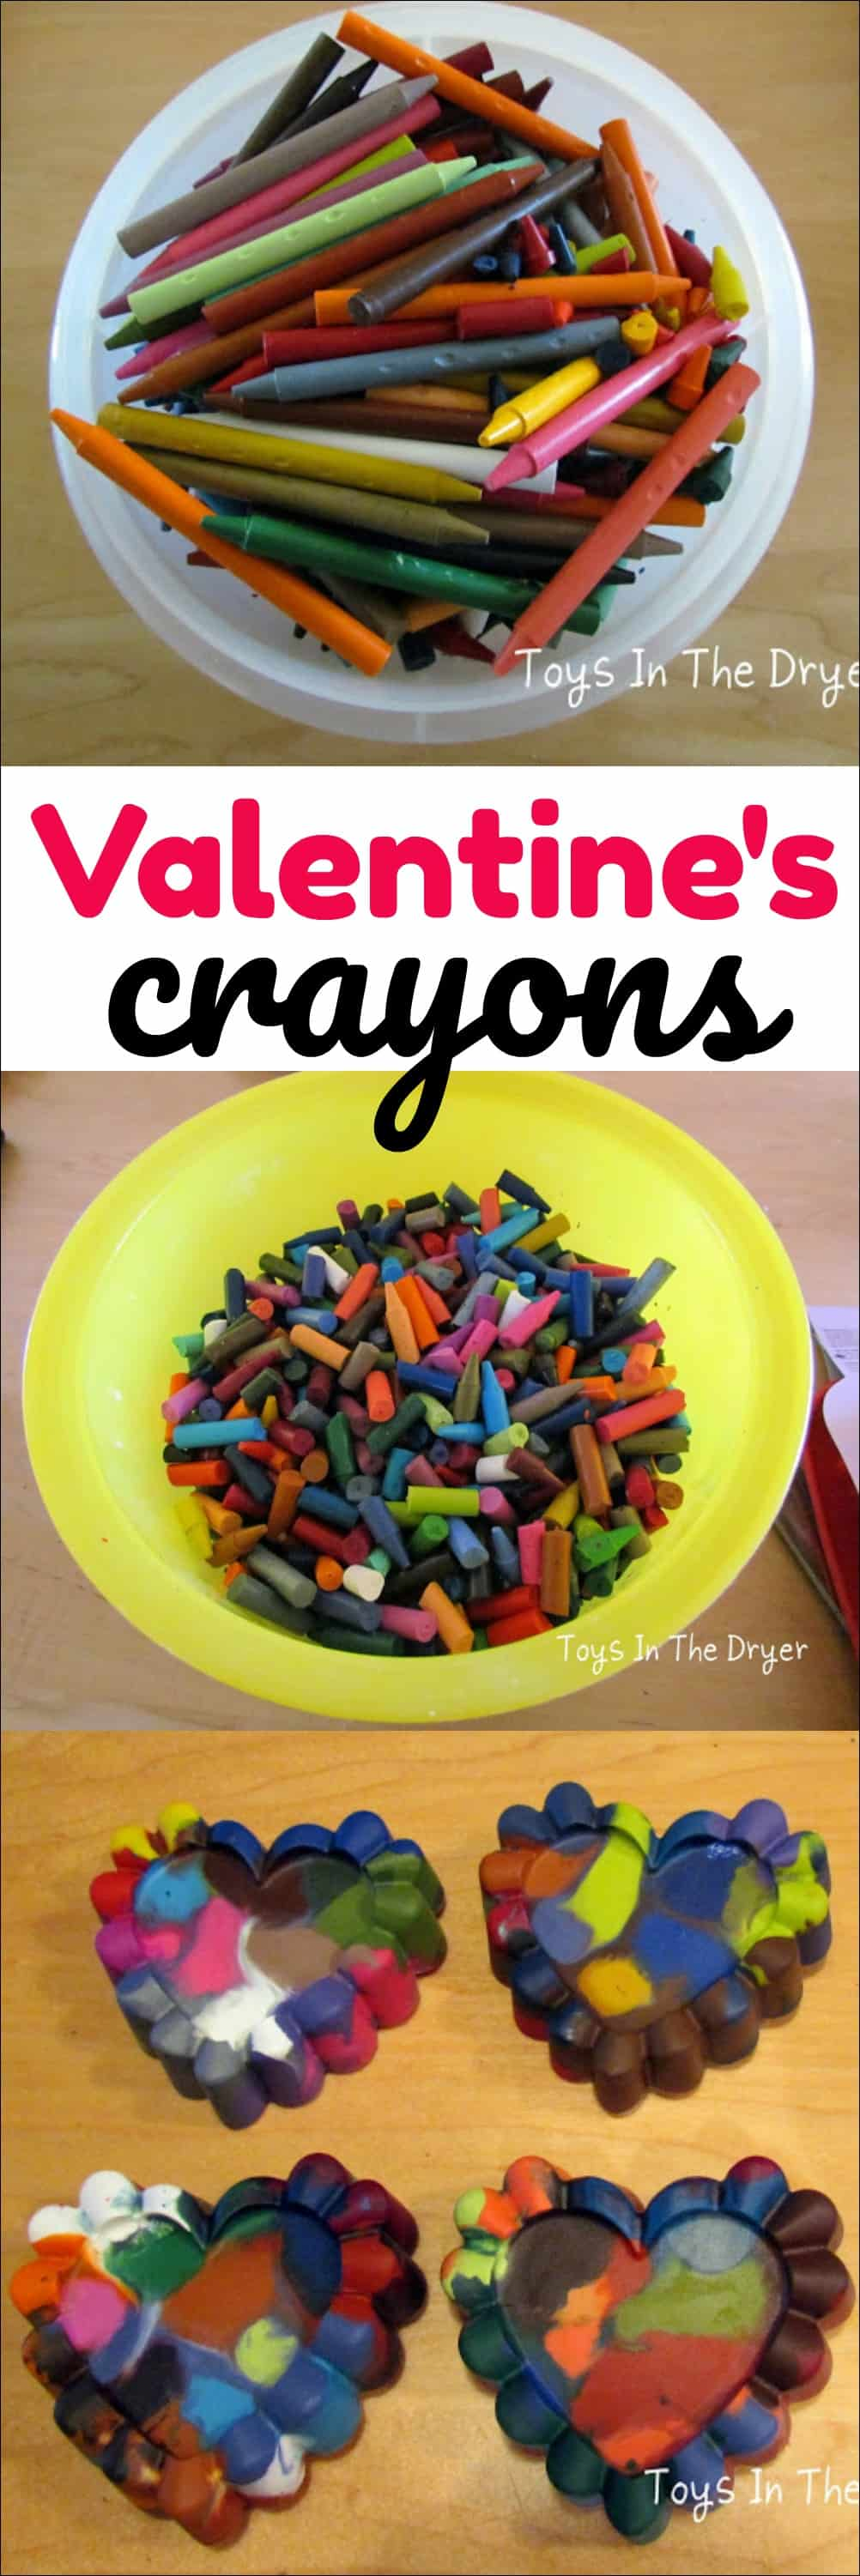 Find out how easy it is to make Valentine crayons with kids. These make great party favorites and classroom gifts.